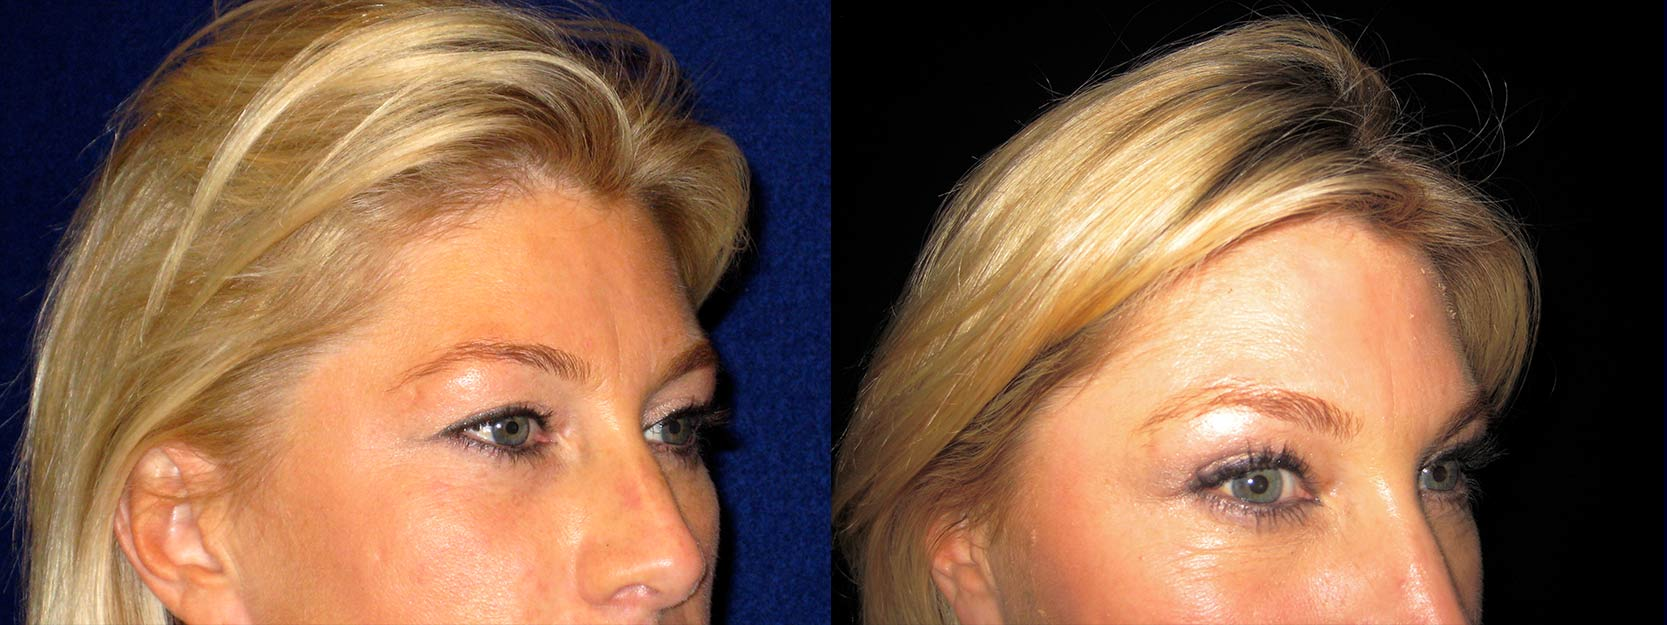 Right Profile View - Upper Eyelid Surgery